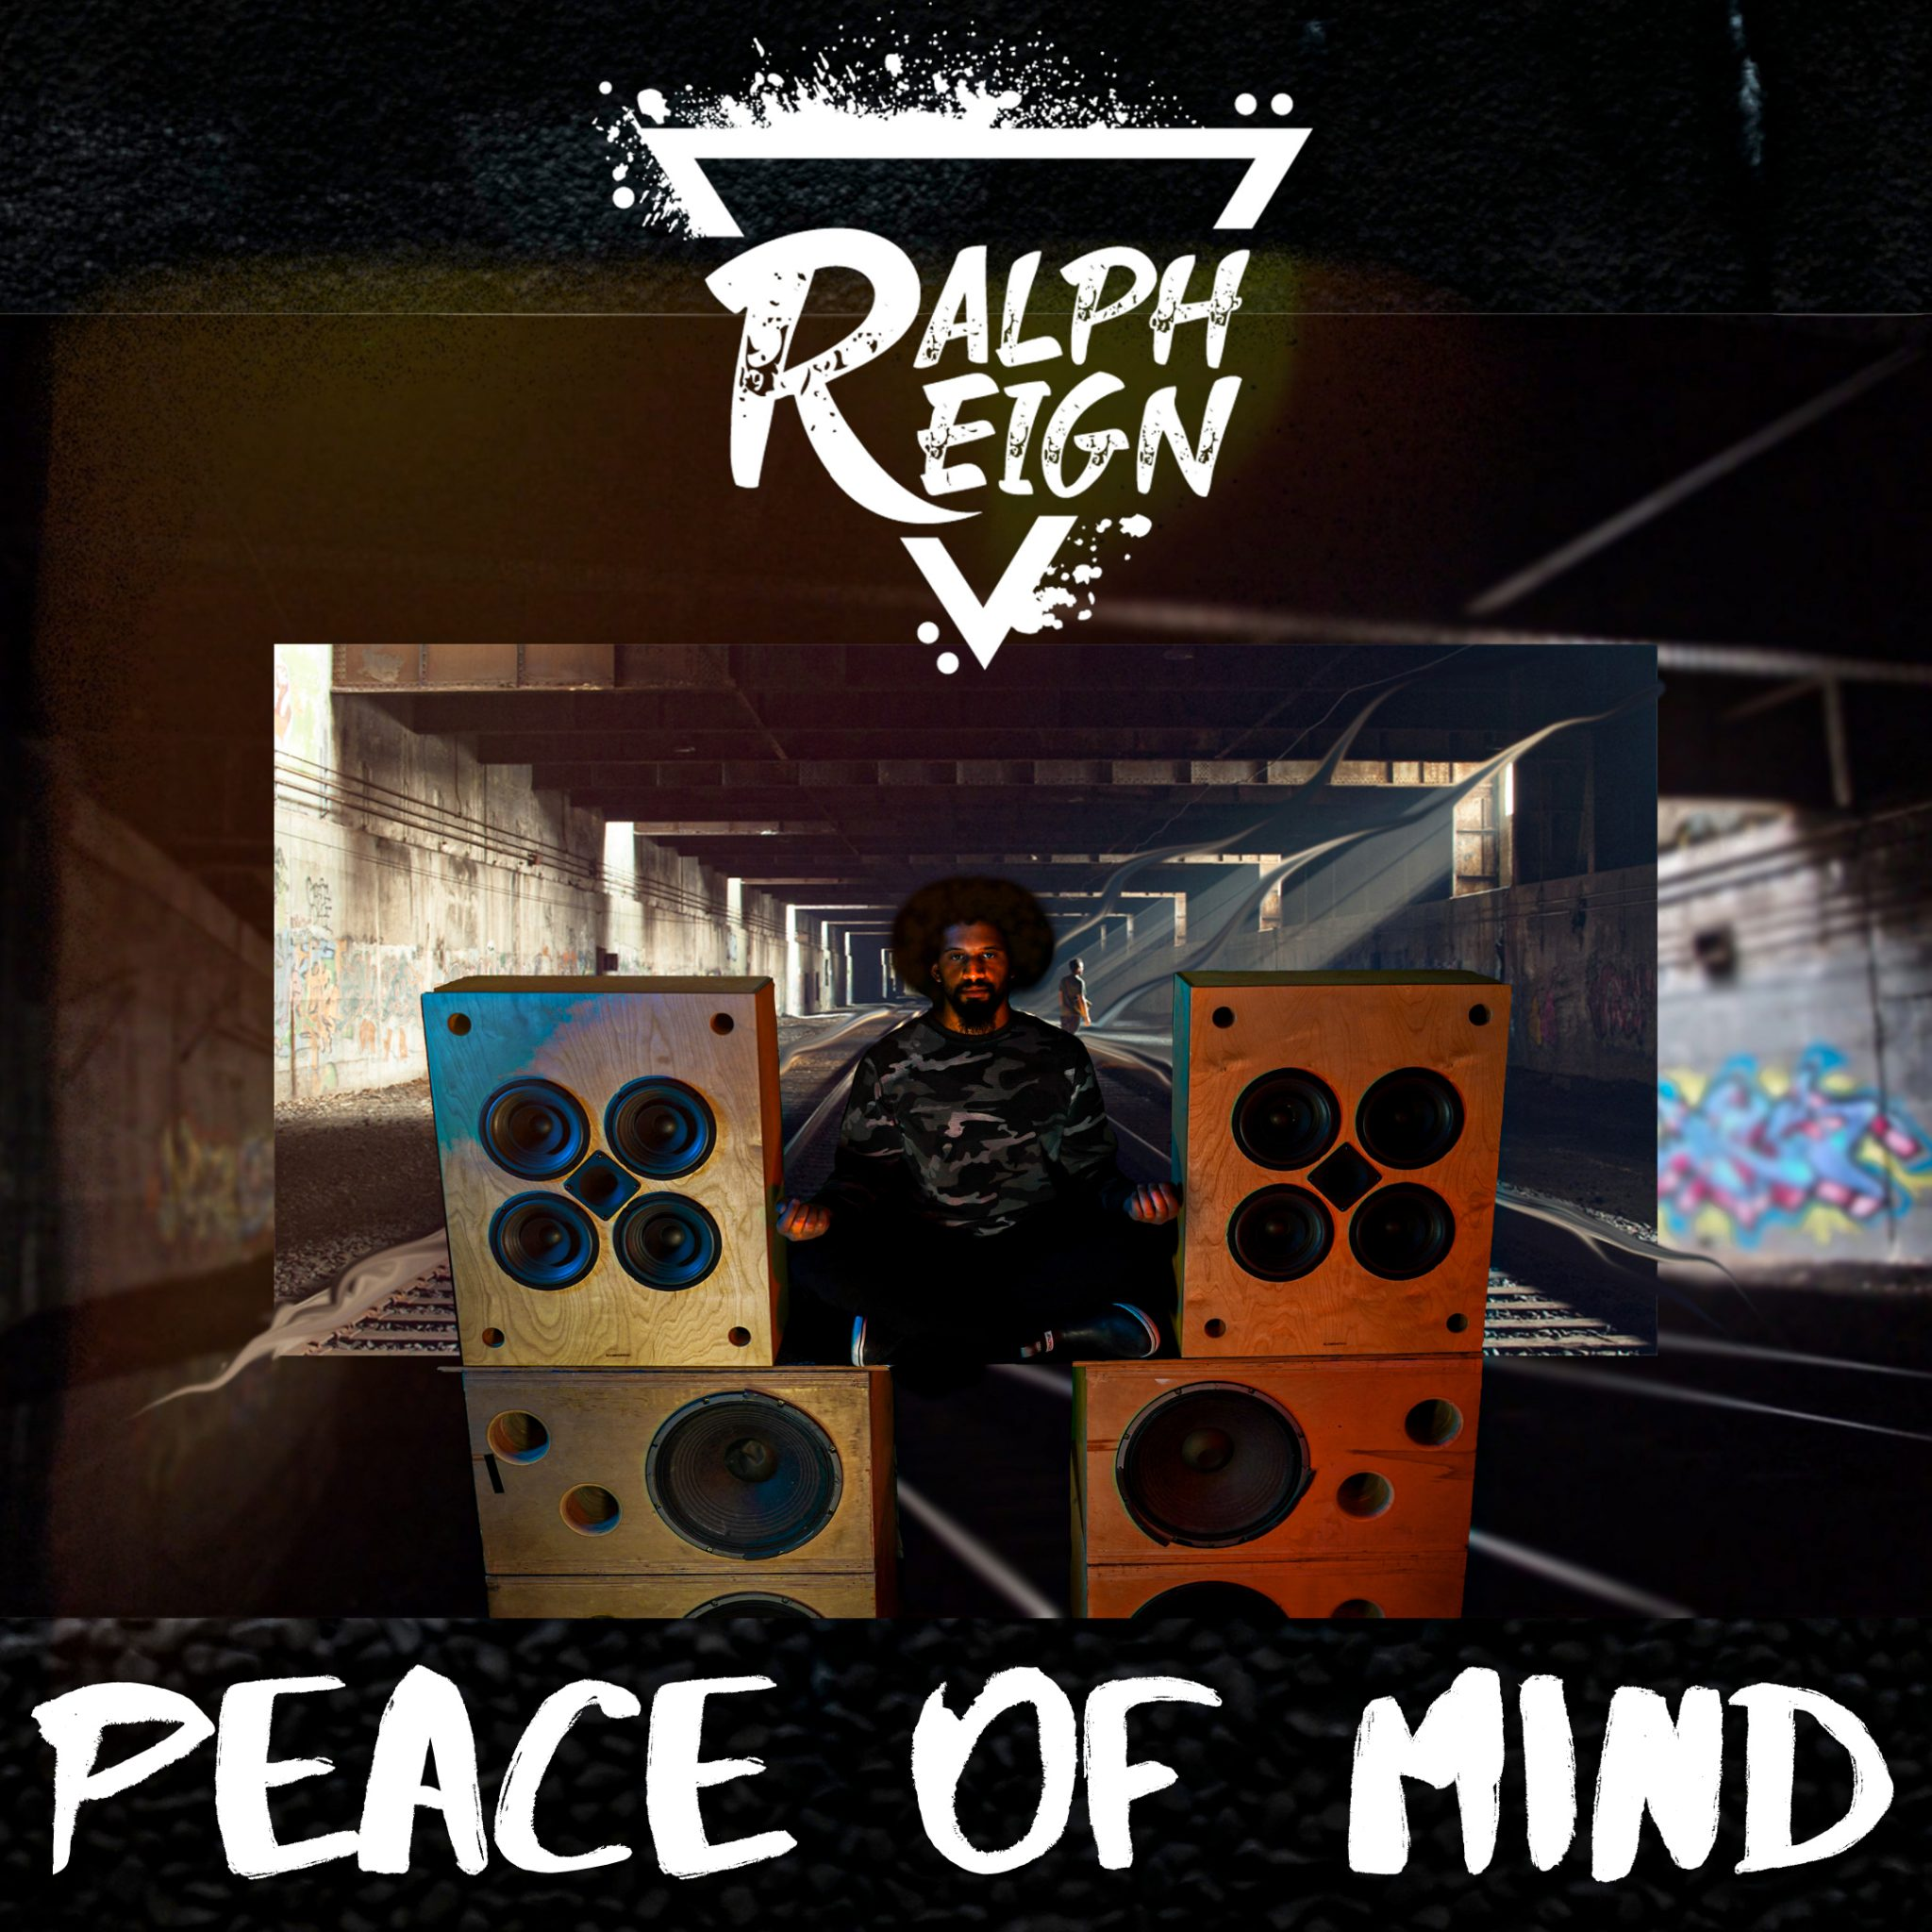 """On the cover for his single """"Peace of Mind"""", Ralph Reign stands with his arms outstretched between two speaker towers."""